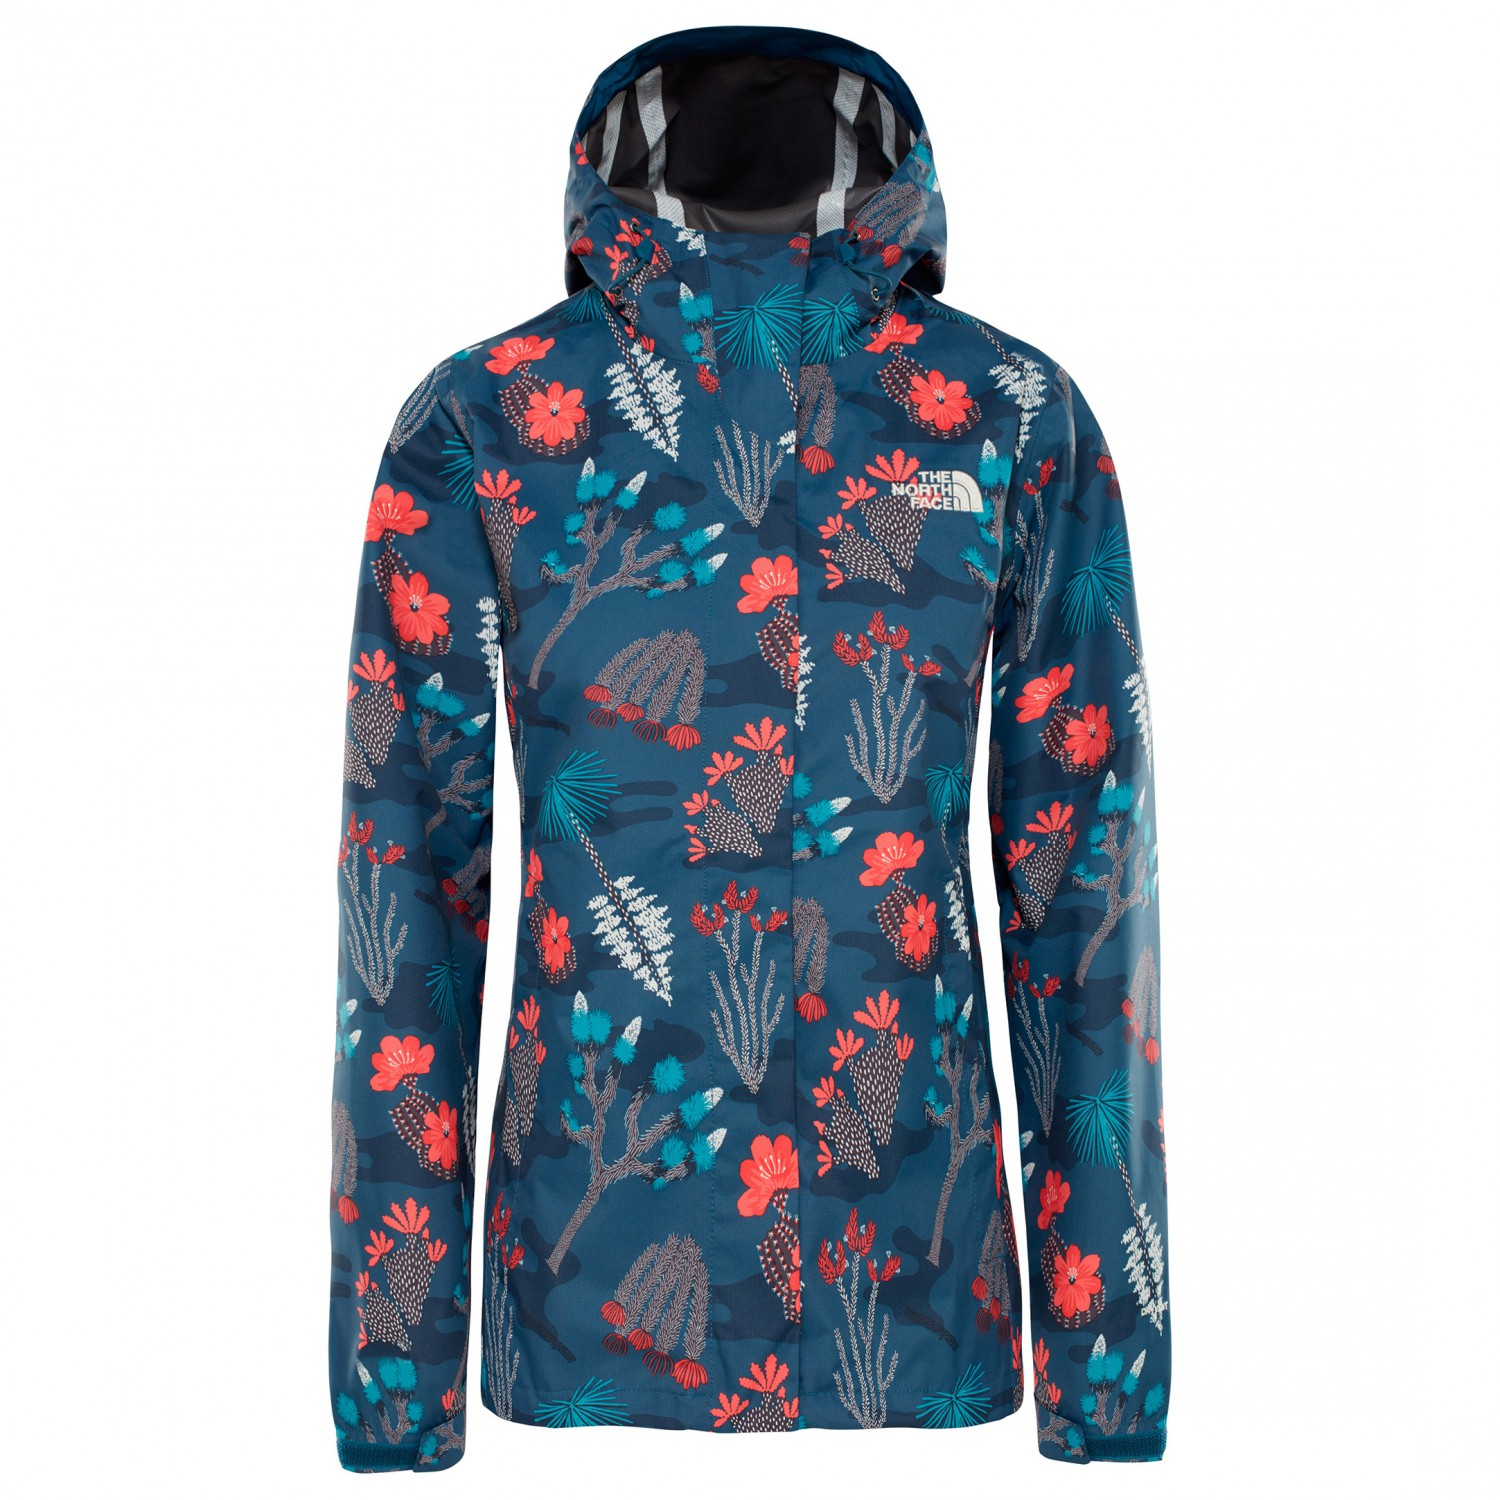 finest selection 2f426 58f2e The North Face - Women's Print Venture Jacket - Regenjacke - Blue Wing Teal  Joshua Tree Print | XS